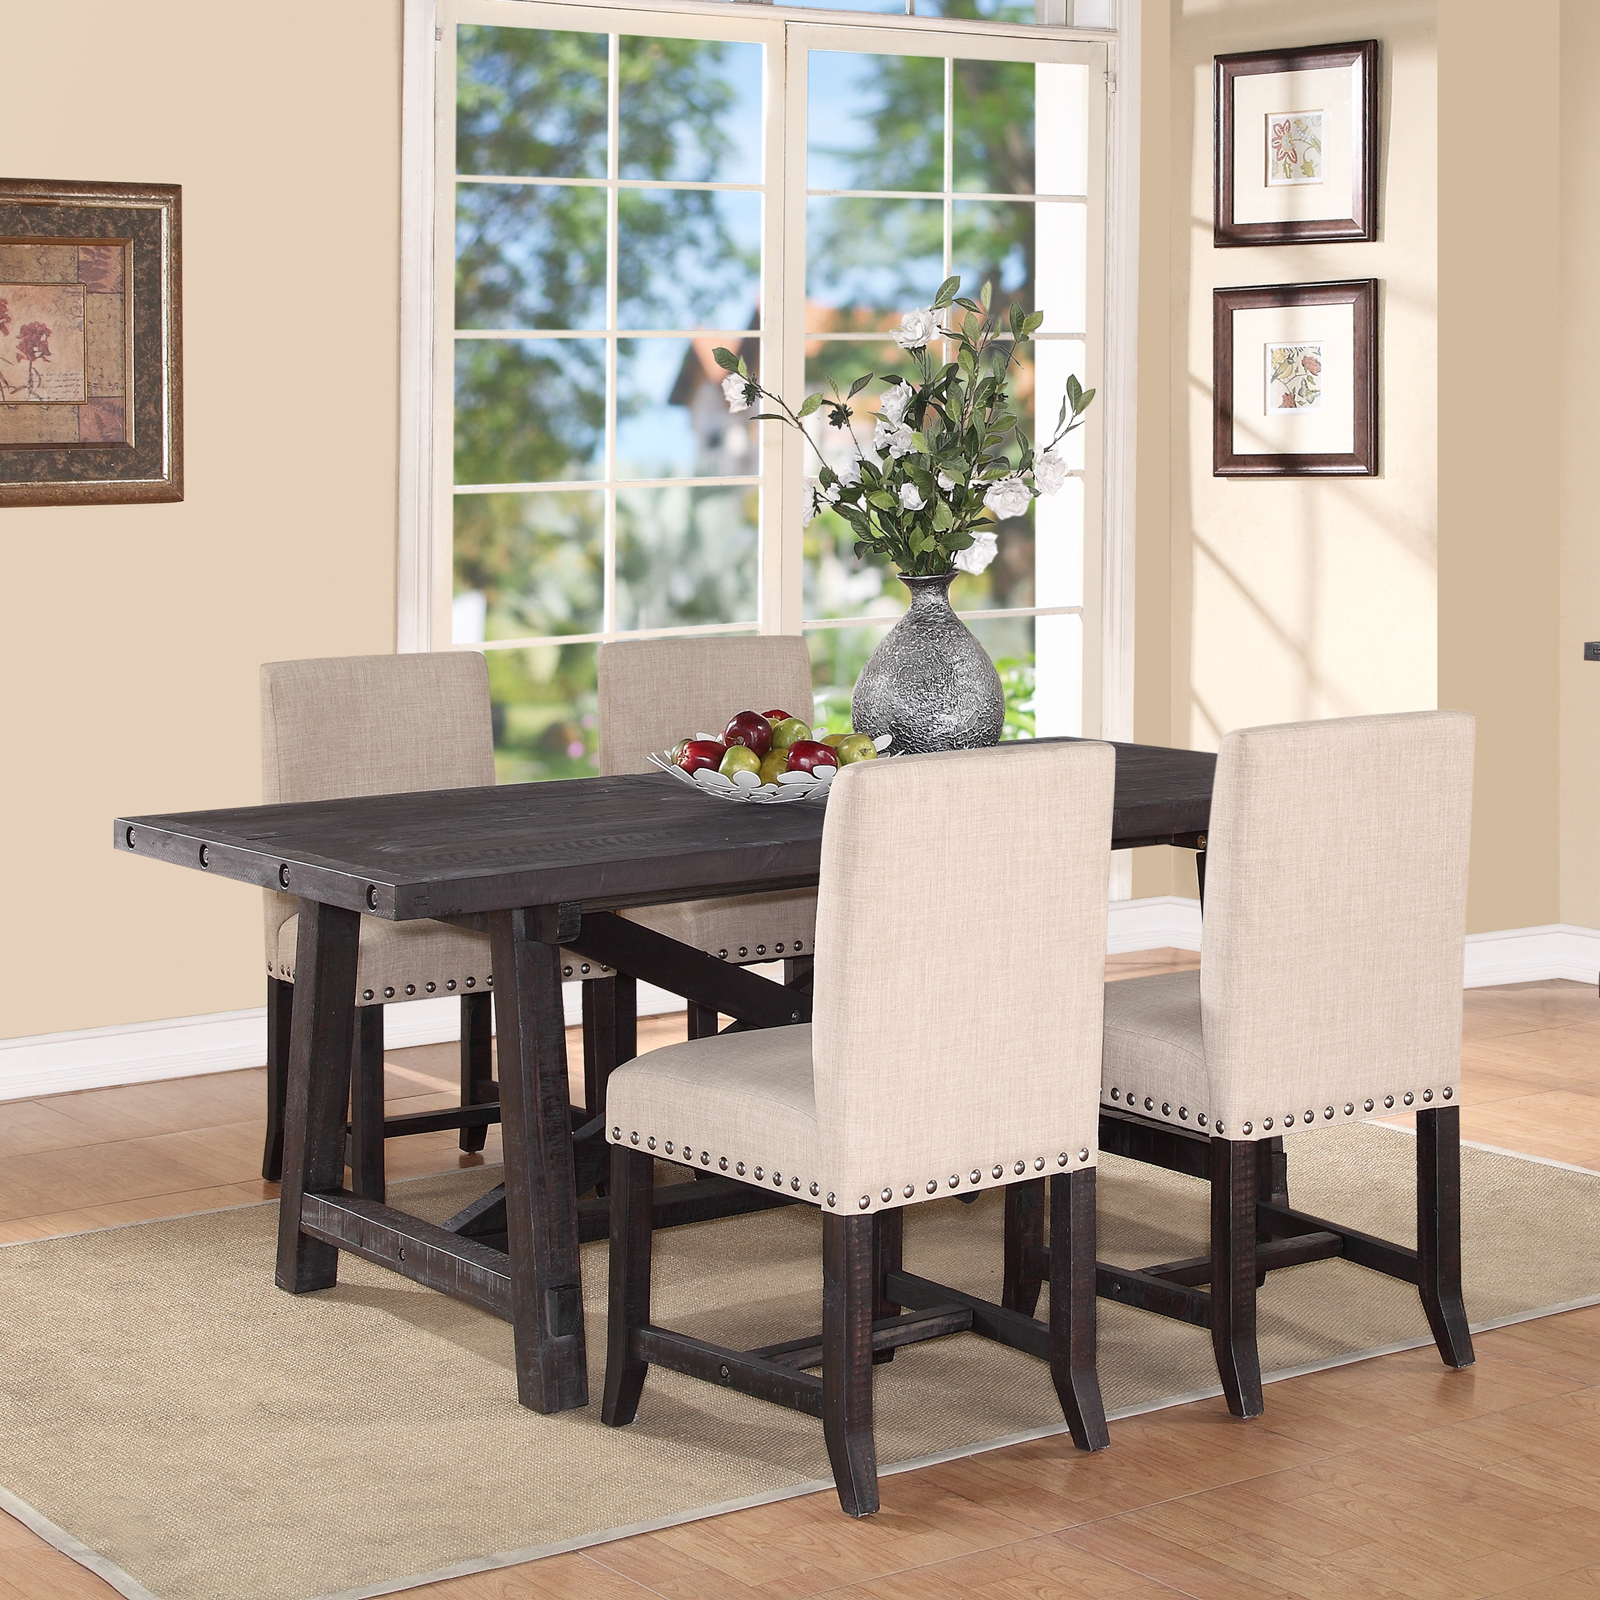 Modus Yosemite 8 Piece Oval Dining Table Set With Upholstered Chairs And Settee